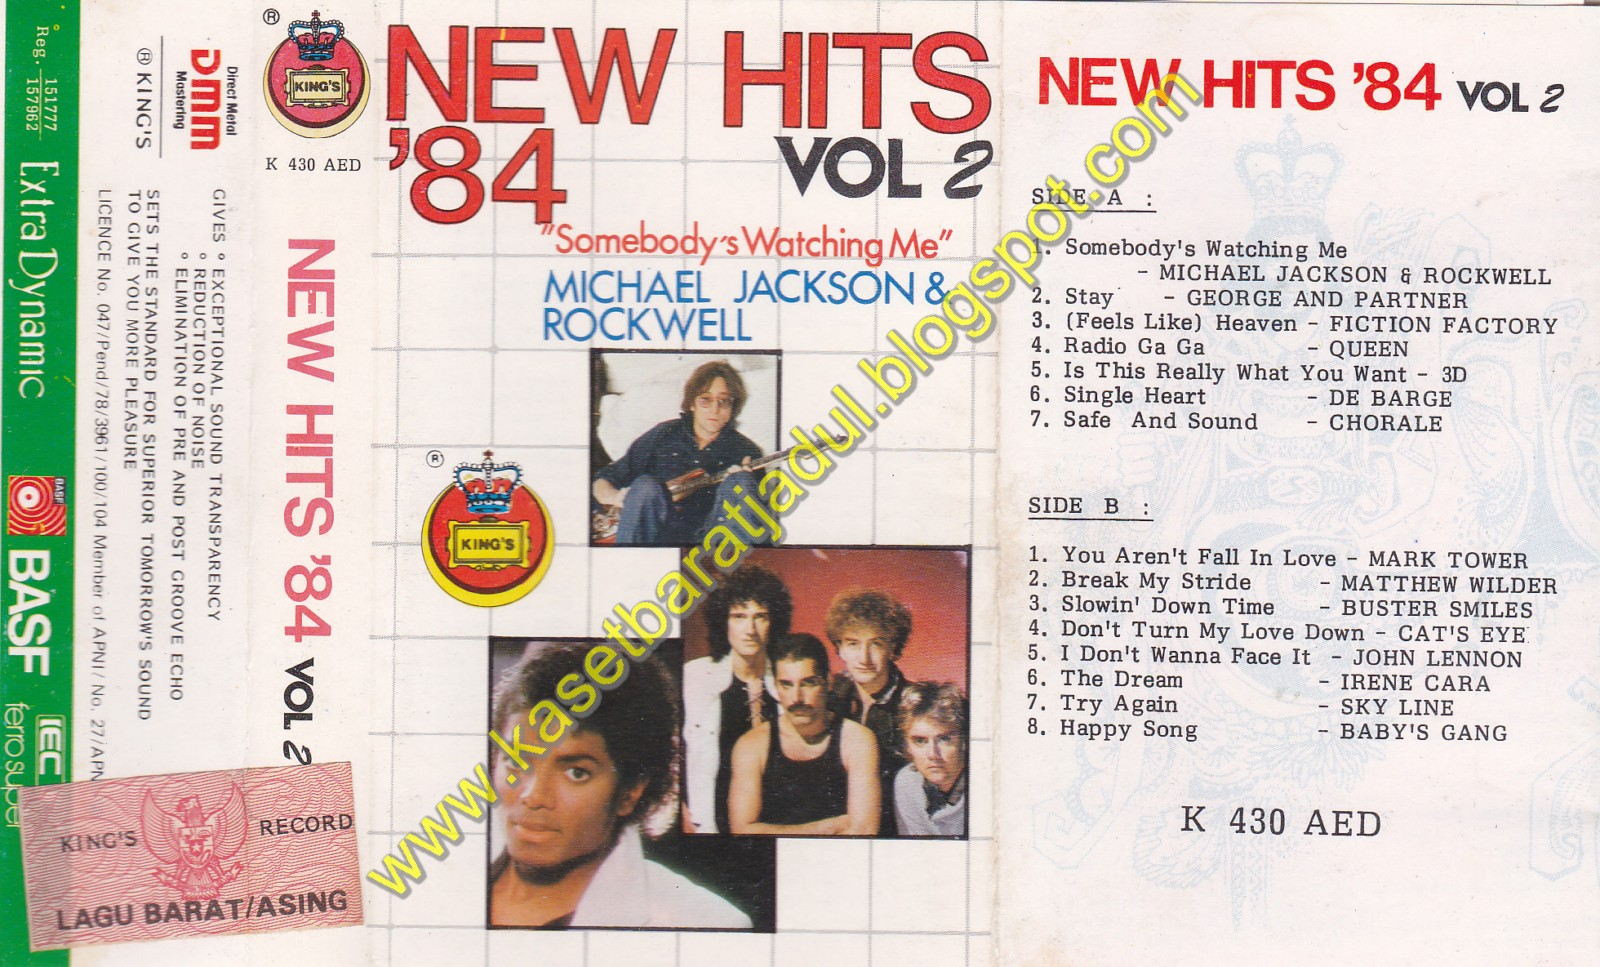 New Hits '84 Vol 2 (Kings Records)